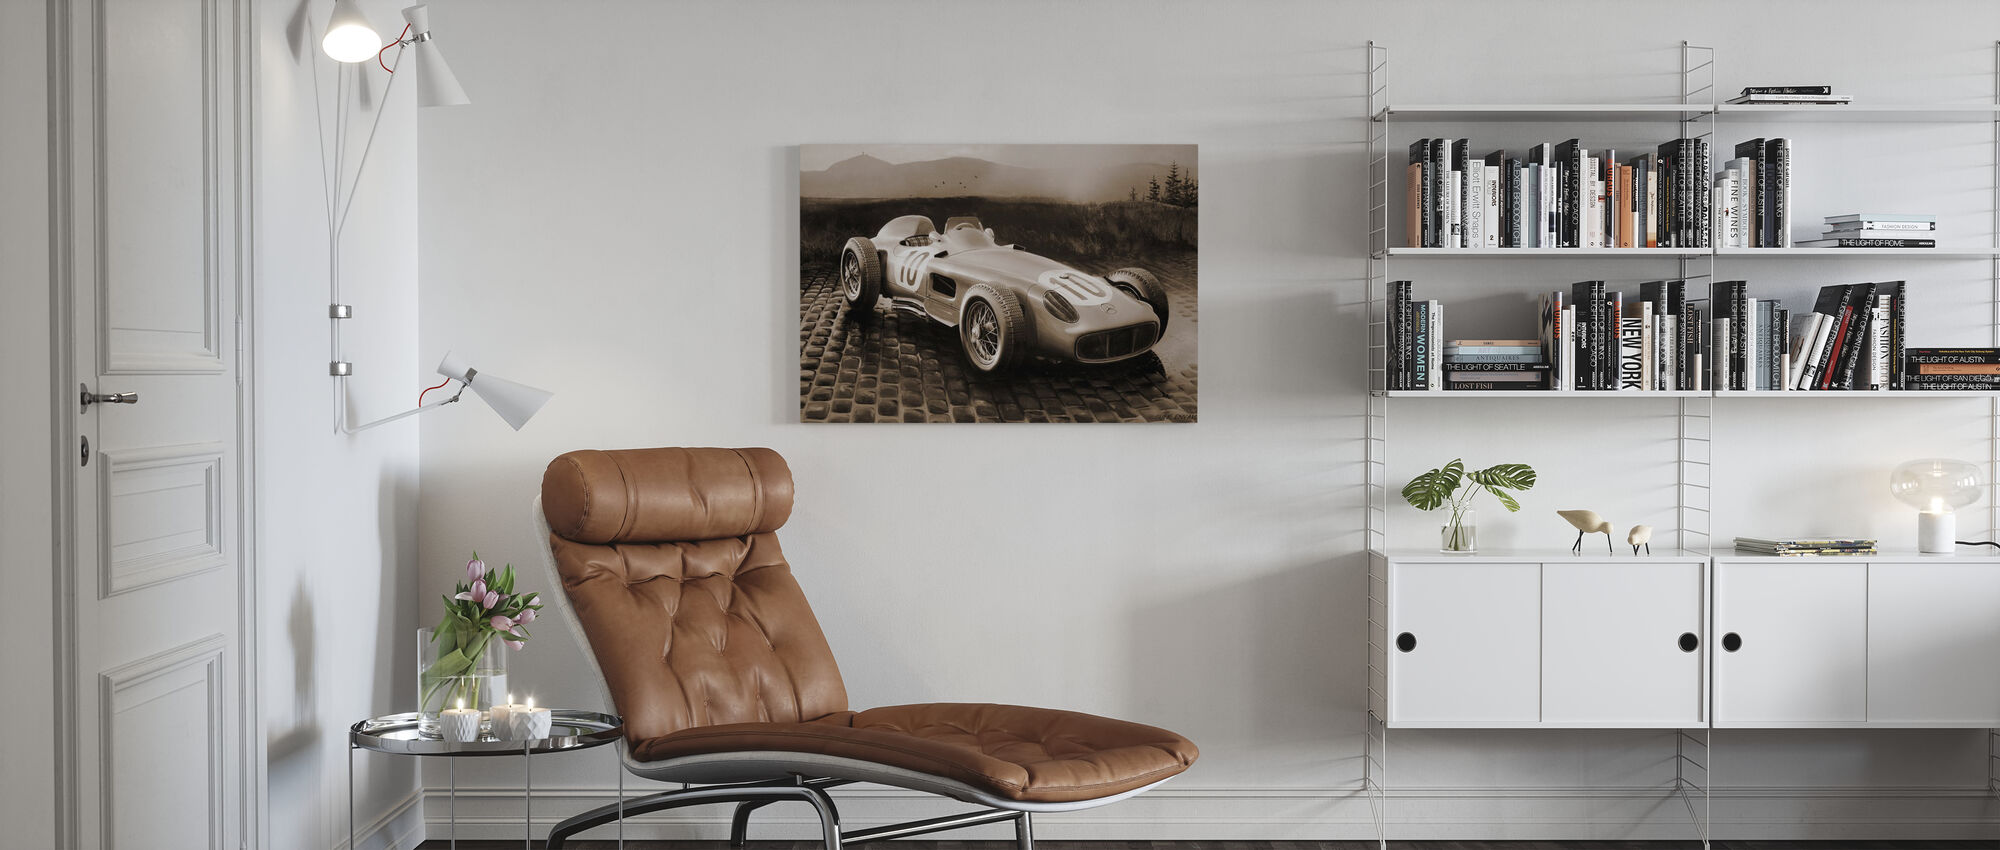 Auto 1954 Sepia - Canvas print - Woonkamer